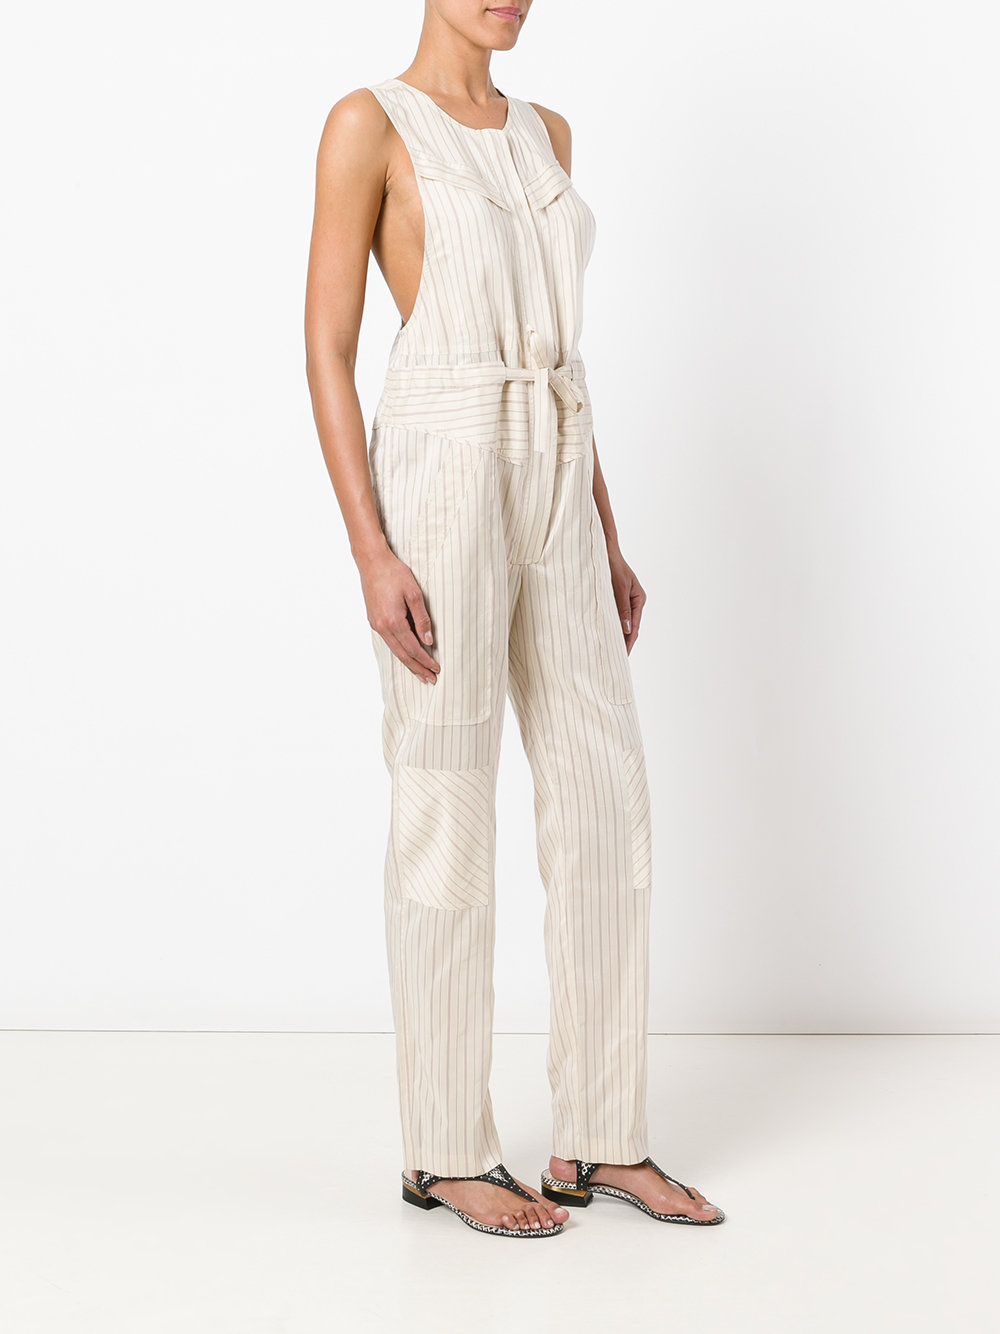 Isabel Marant Suiting Stripe Sleeveless Jumpsuit - Farfetch